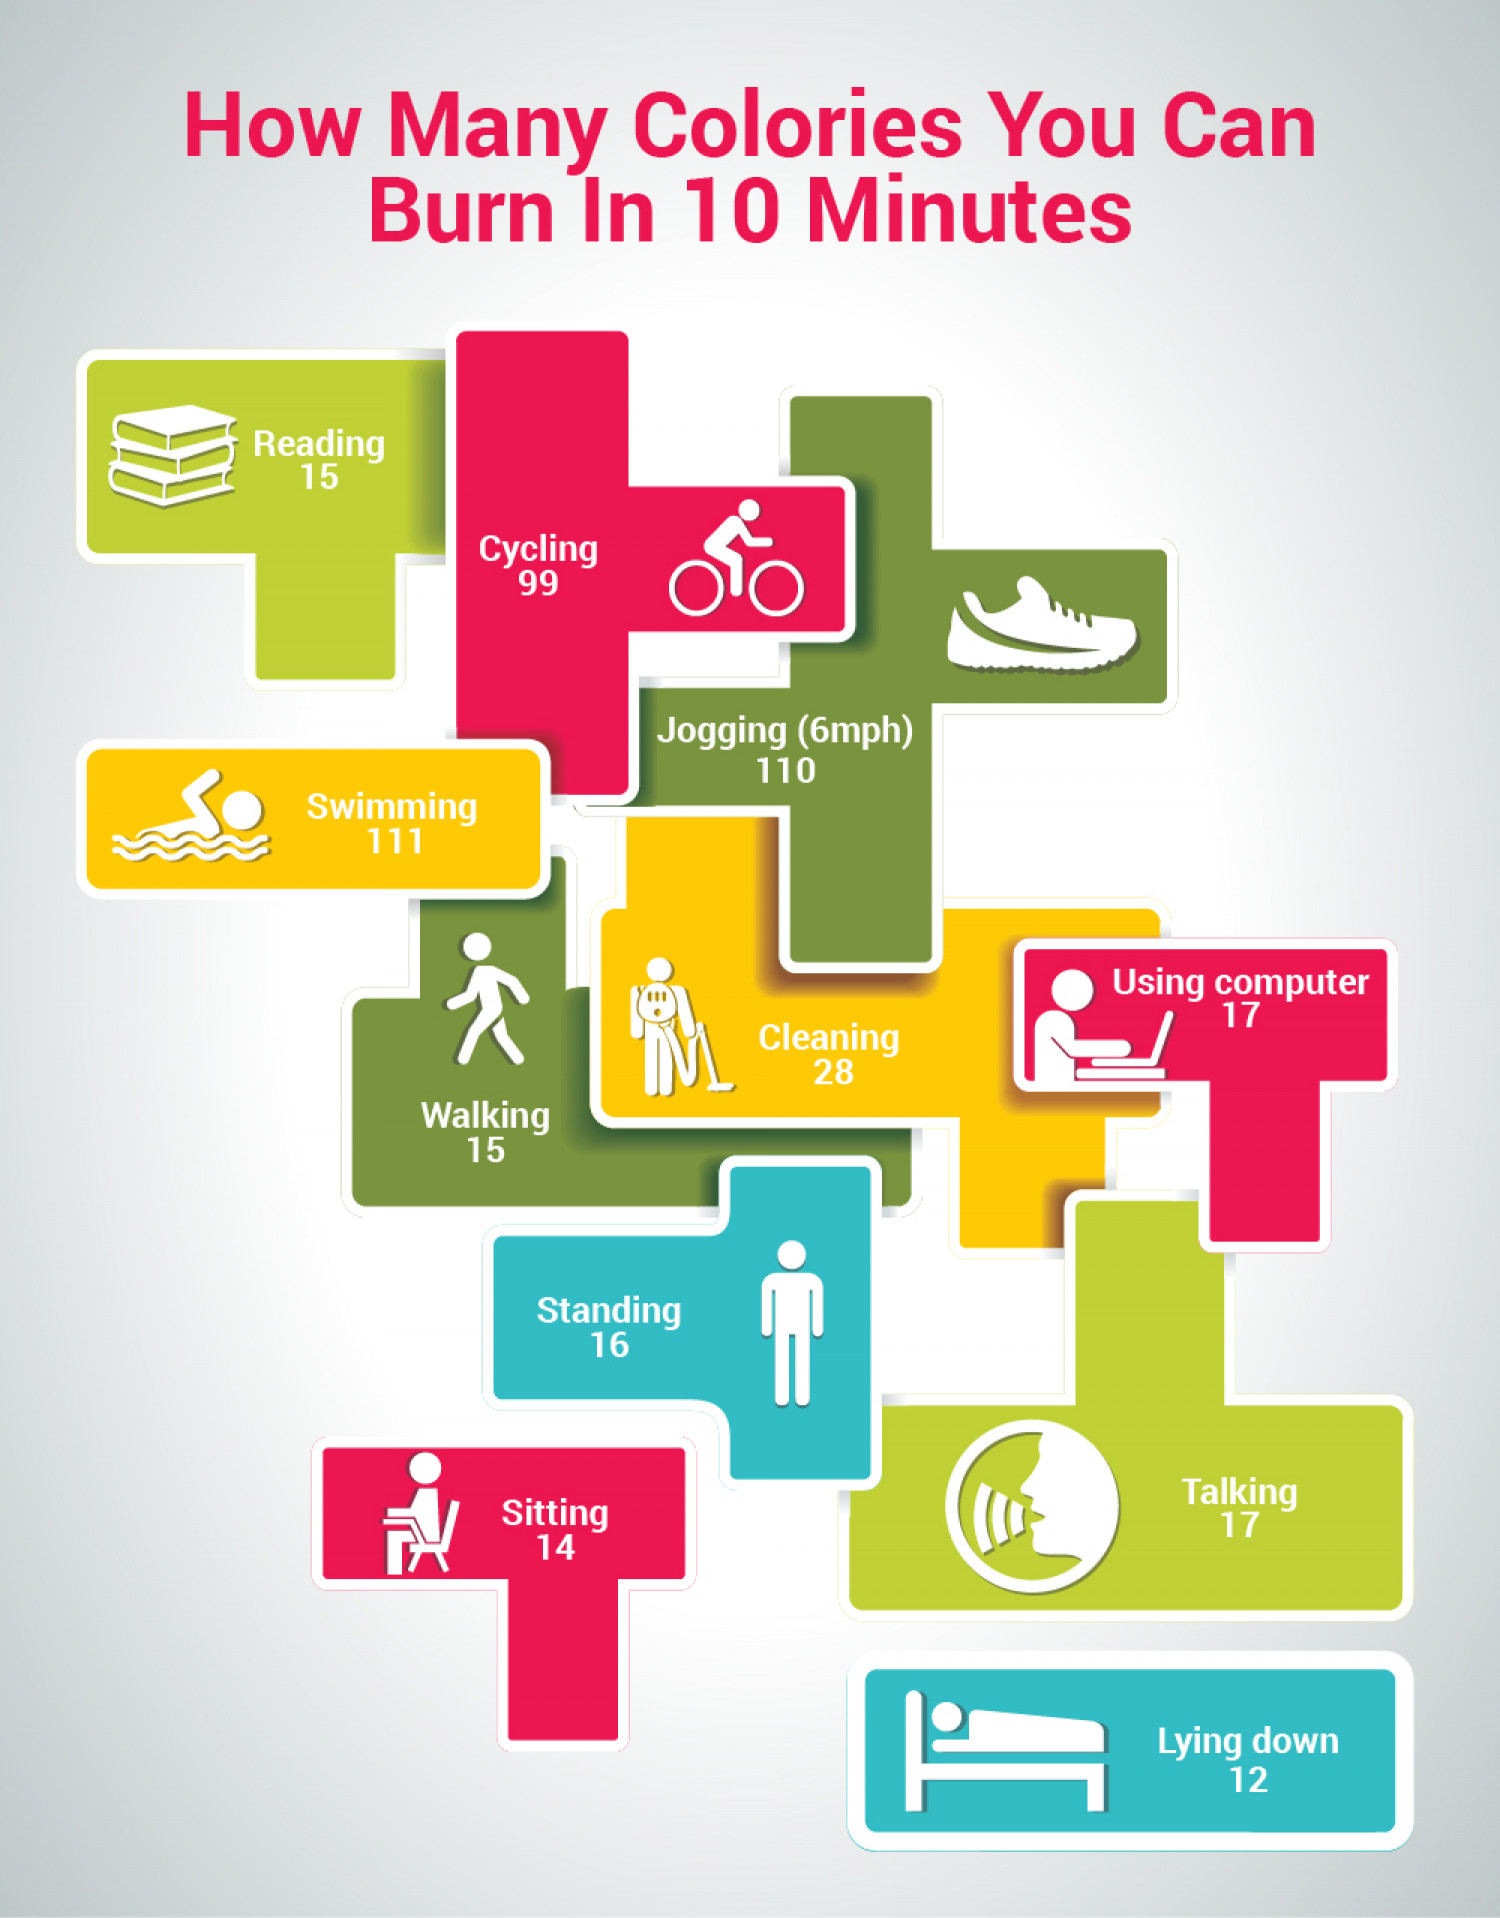 How Many Calories You Can Burn in 10 Minutes Infographic